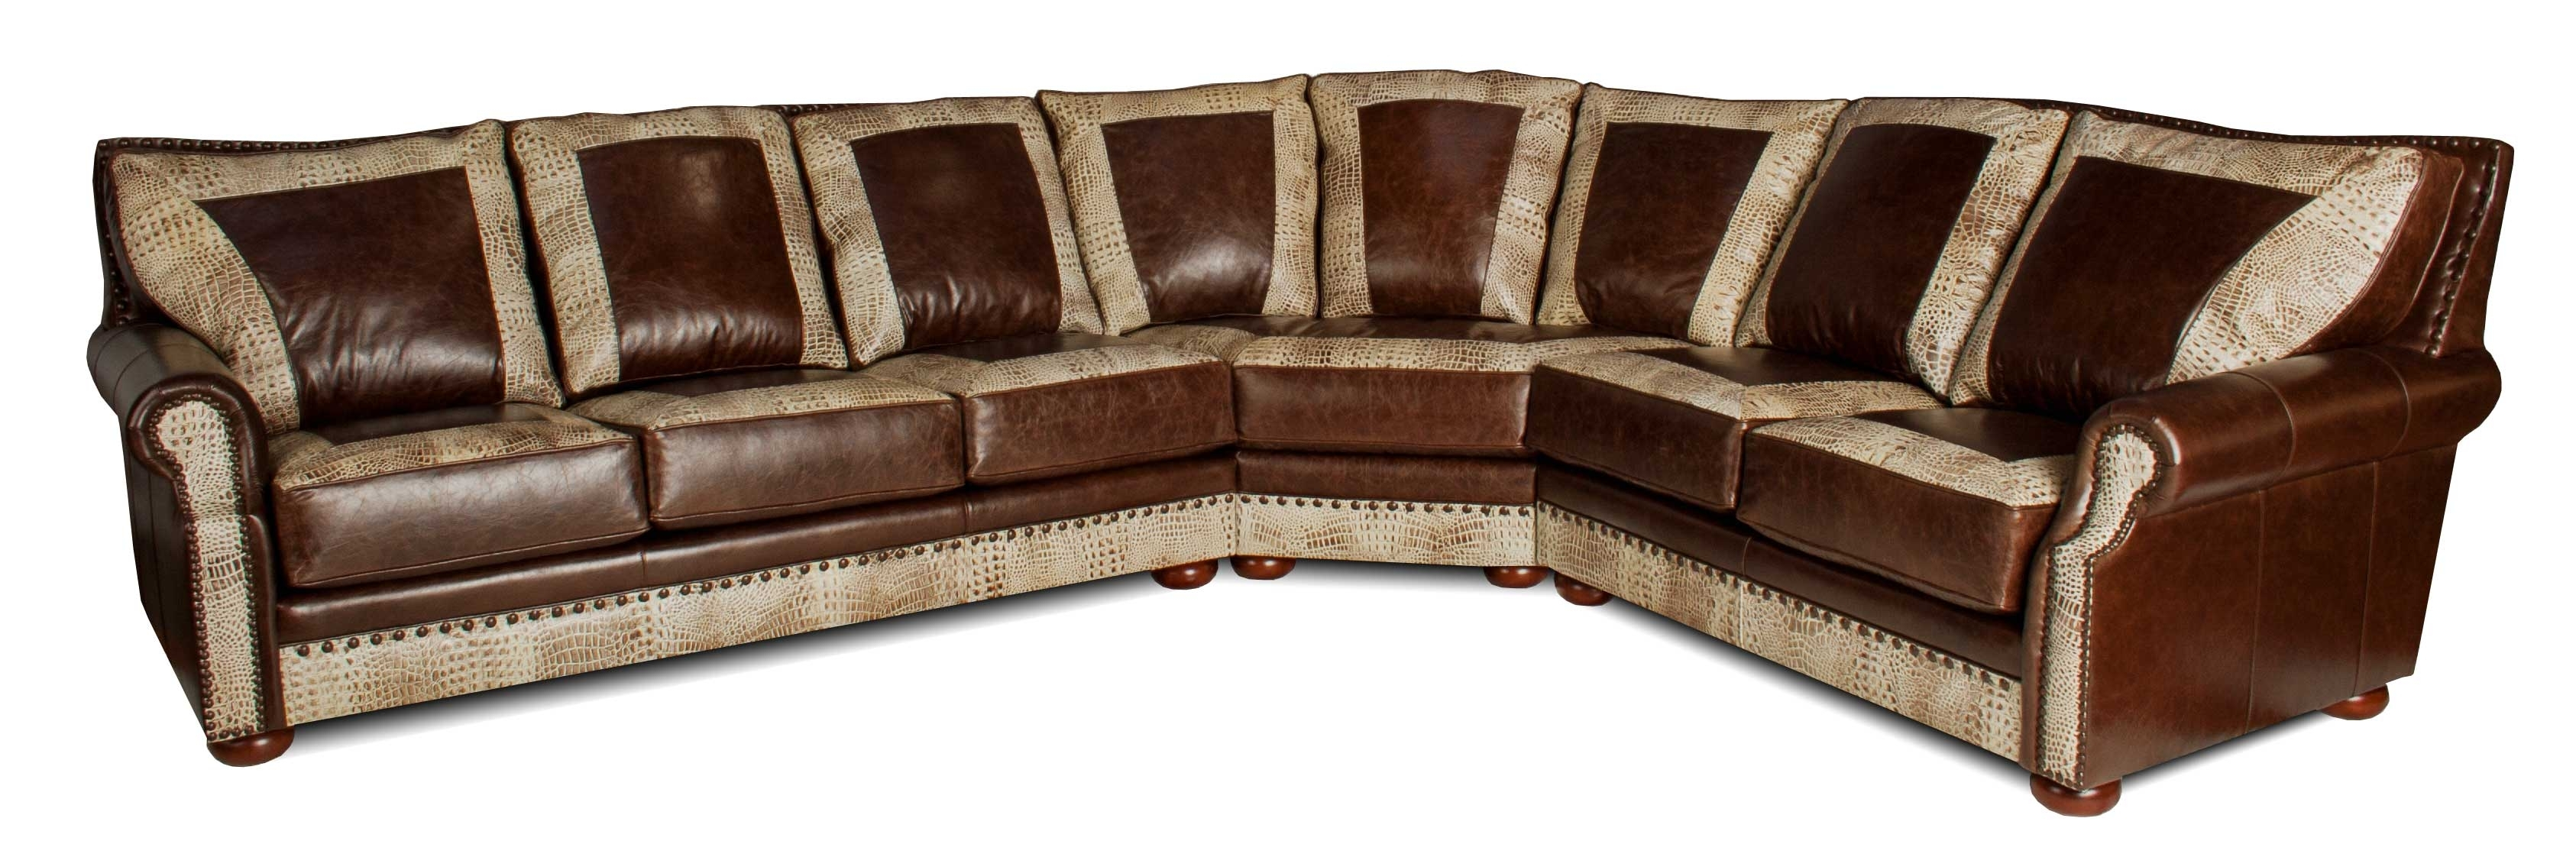 Furniture : Lovely Custom Leather Sectional Sofa 12 For Your Inside Kitchener Sectional Sofas (View 6 of 10)